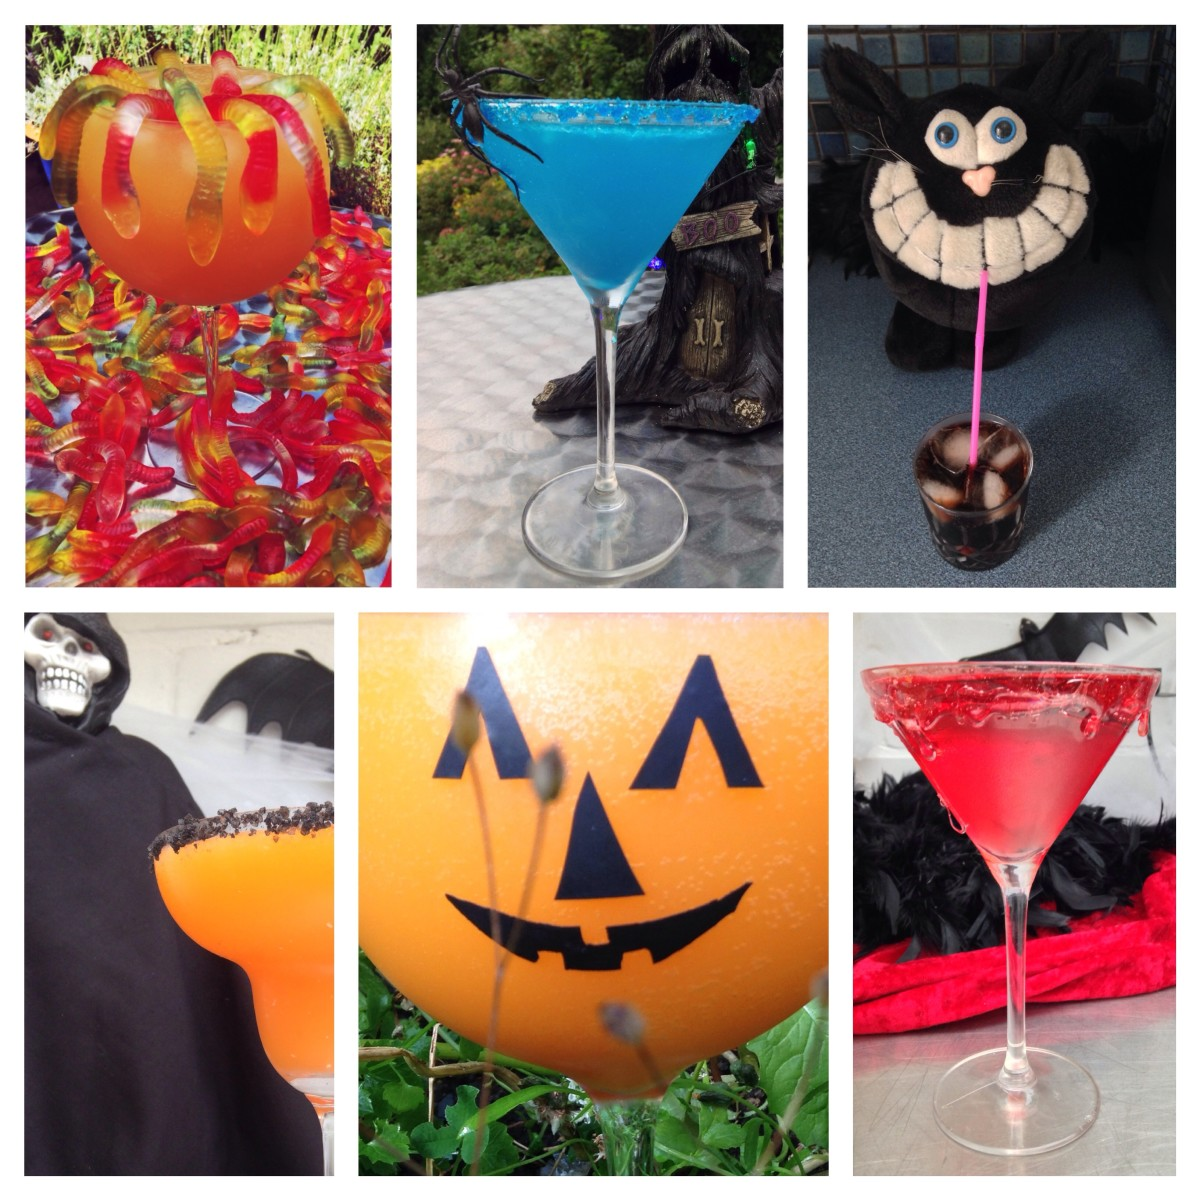 11 Creepy Halloween Cocktail Concoctions